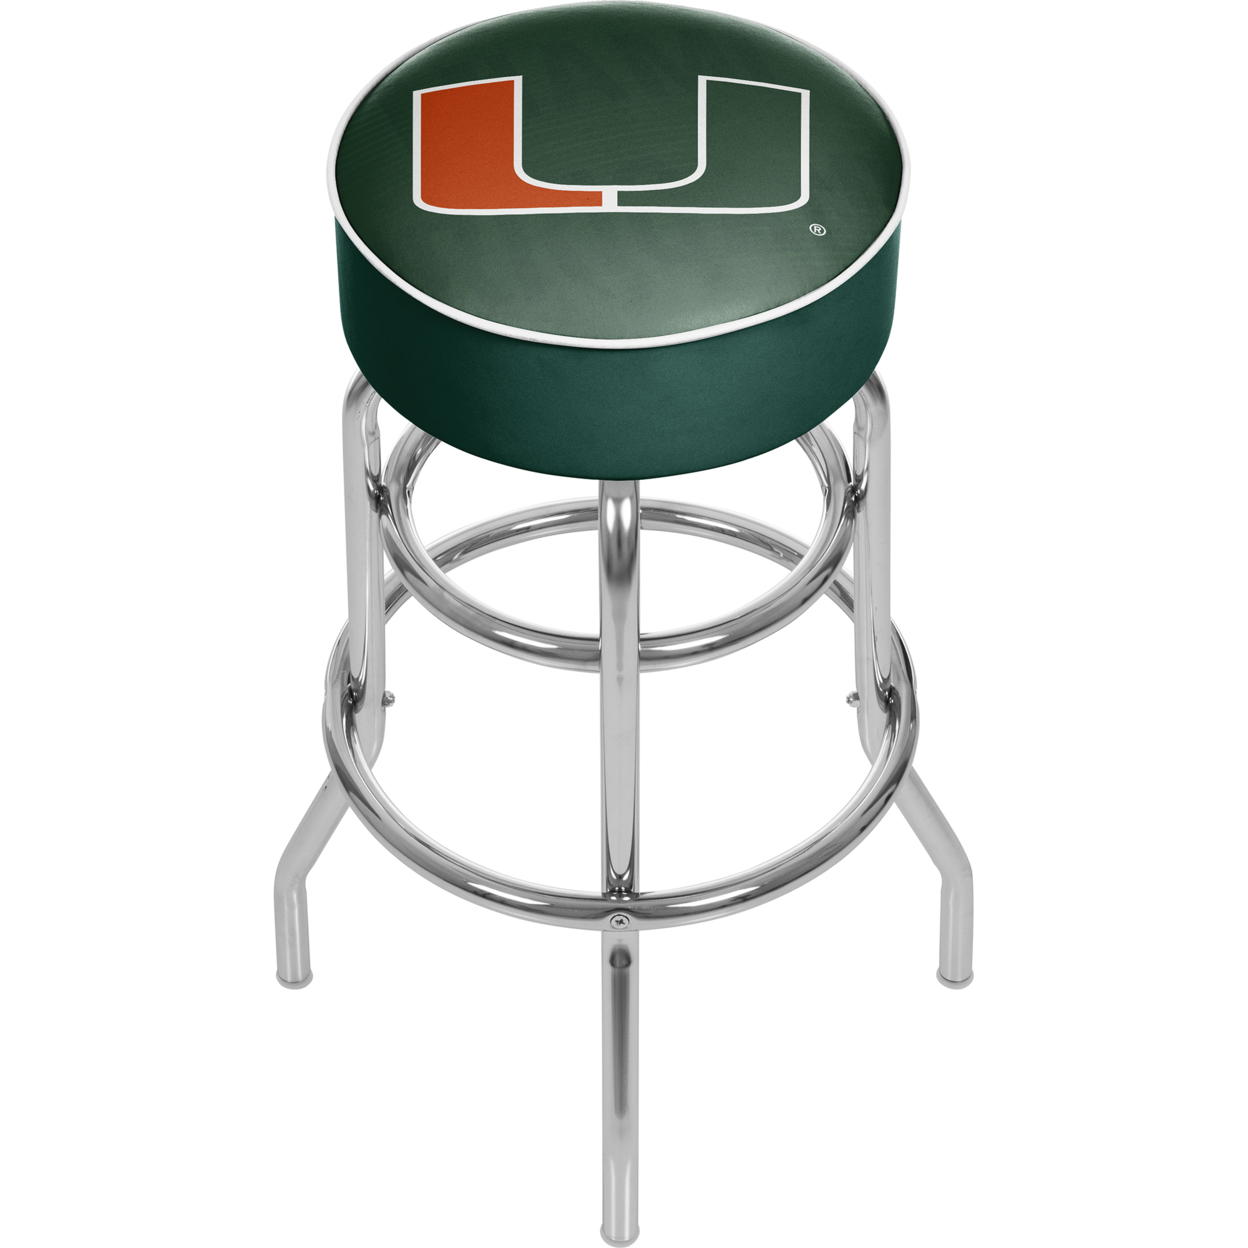 University of Miami Chrome Bar Stool with Swivel - Wordmark